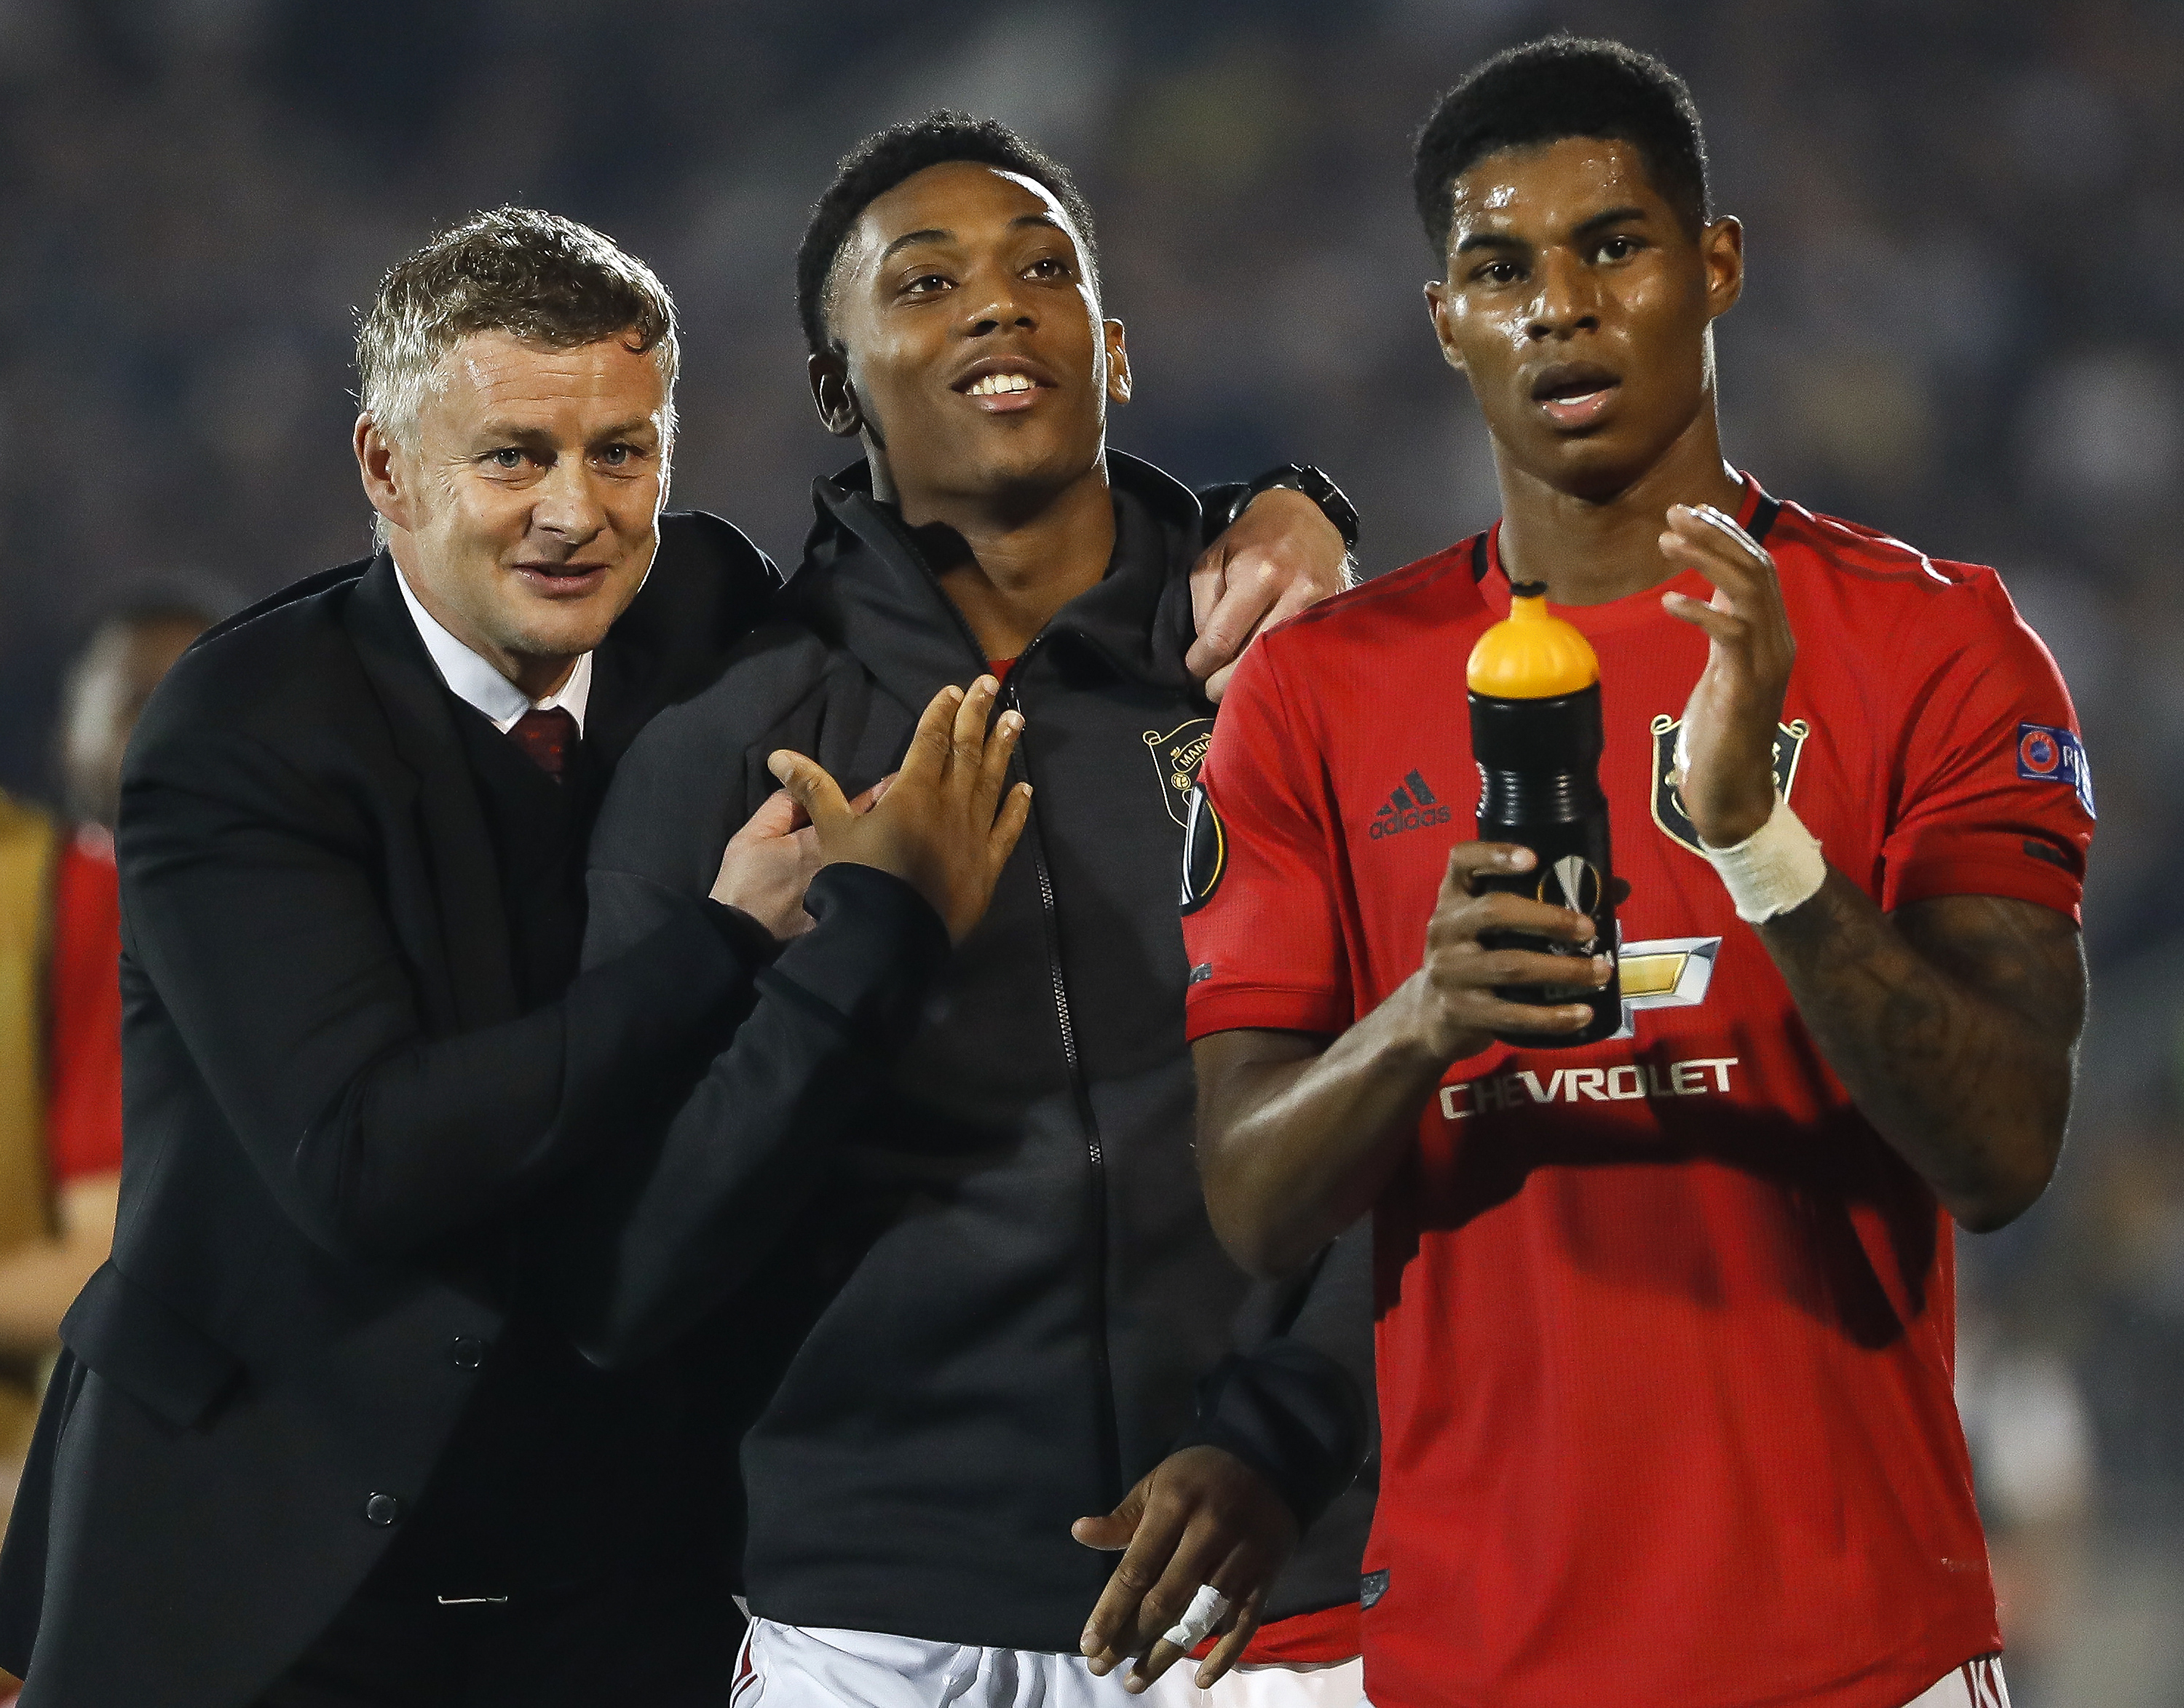 Manchester United's heroes (Photo by Srdjan Stevanovic/Getty Images)